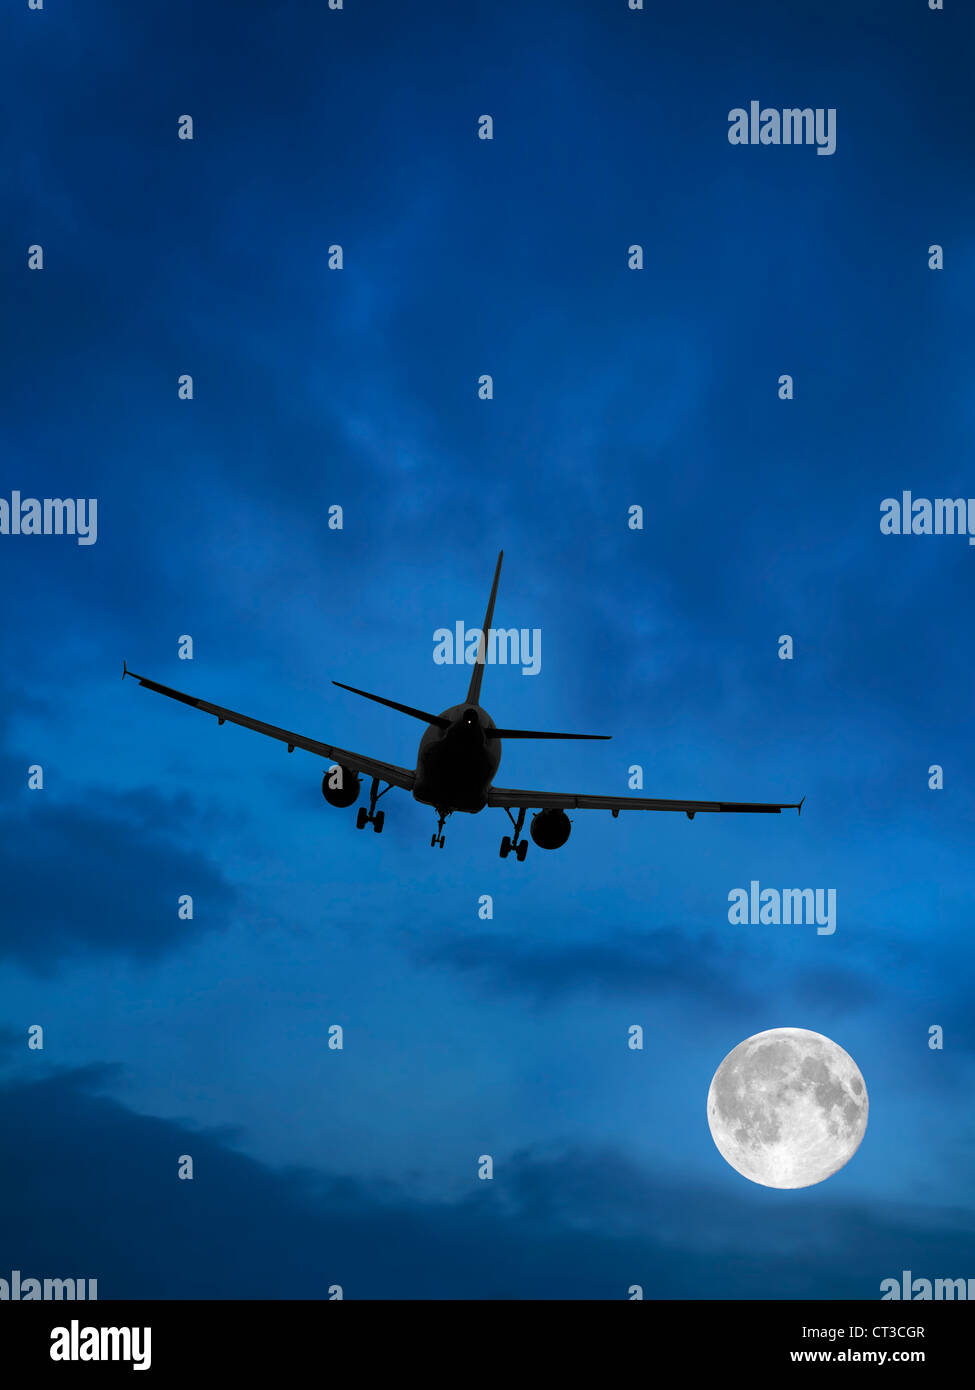 Airplane and Moon in Blue Sky - Stock Image